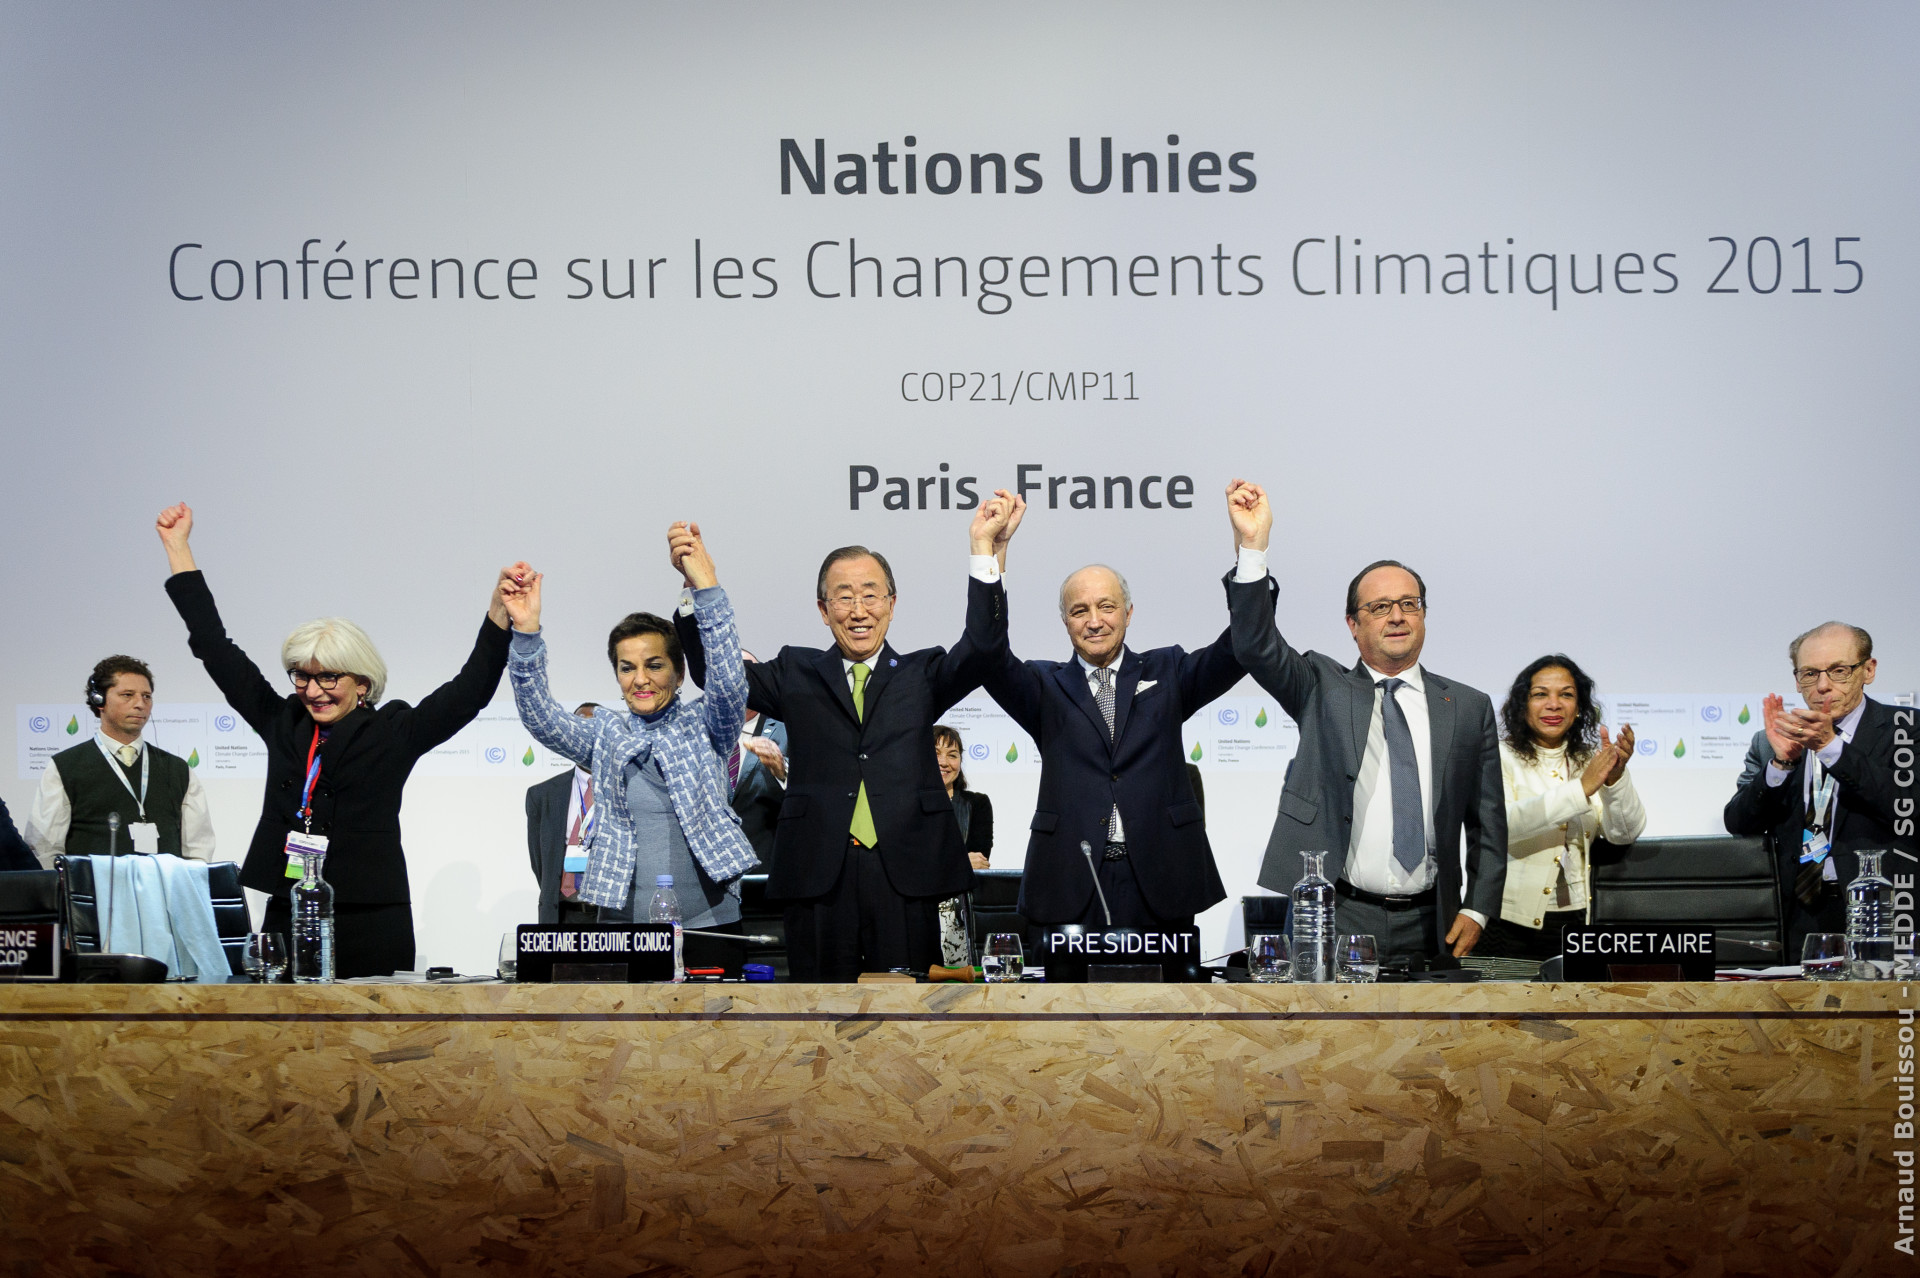 IB Environmental Systems & Societies: Climate Change Negotiations